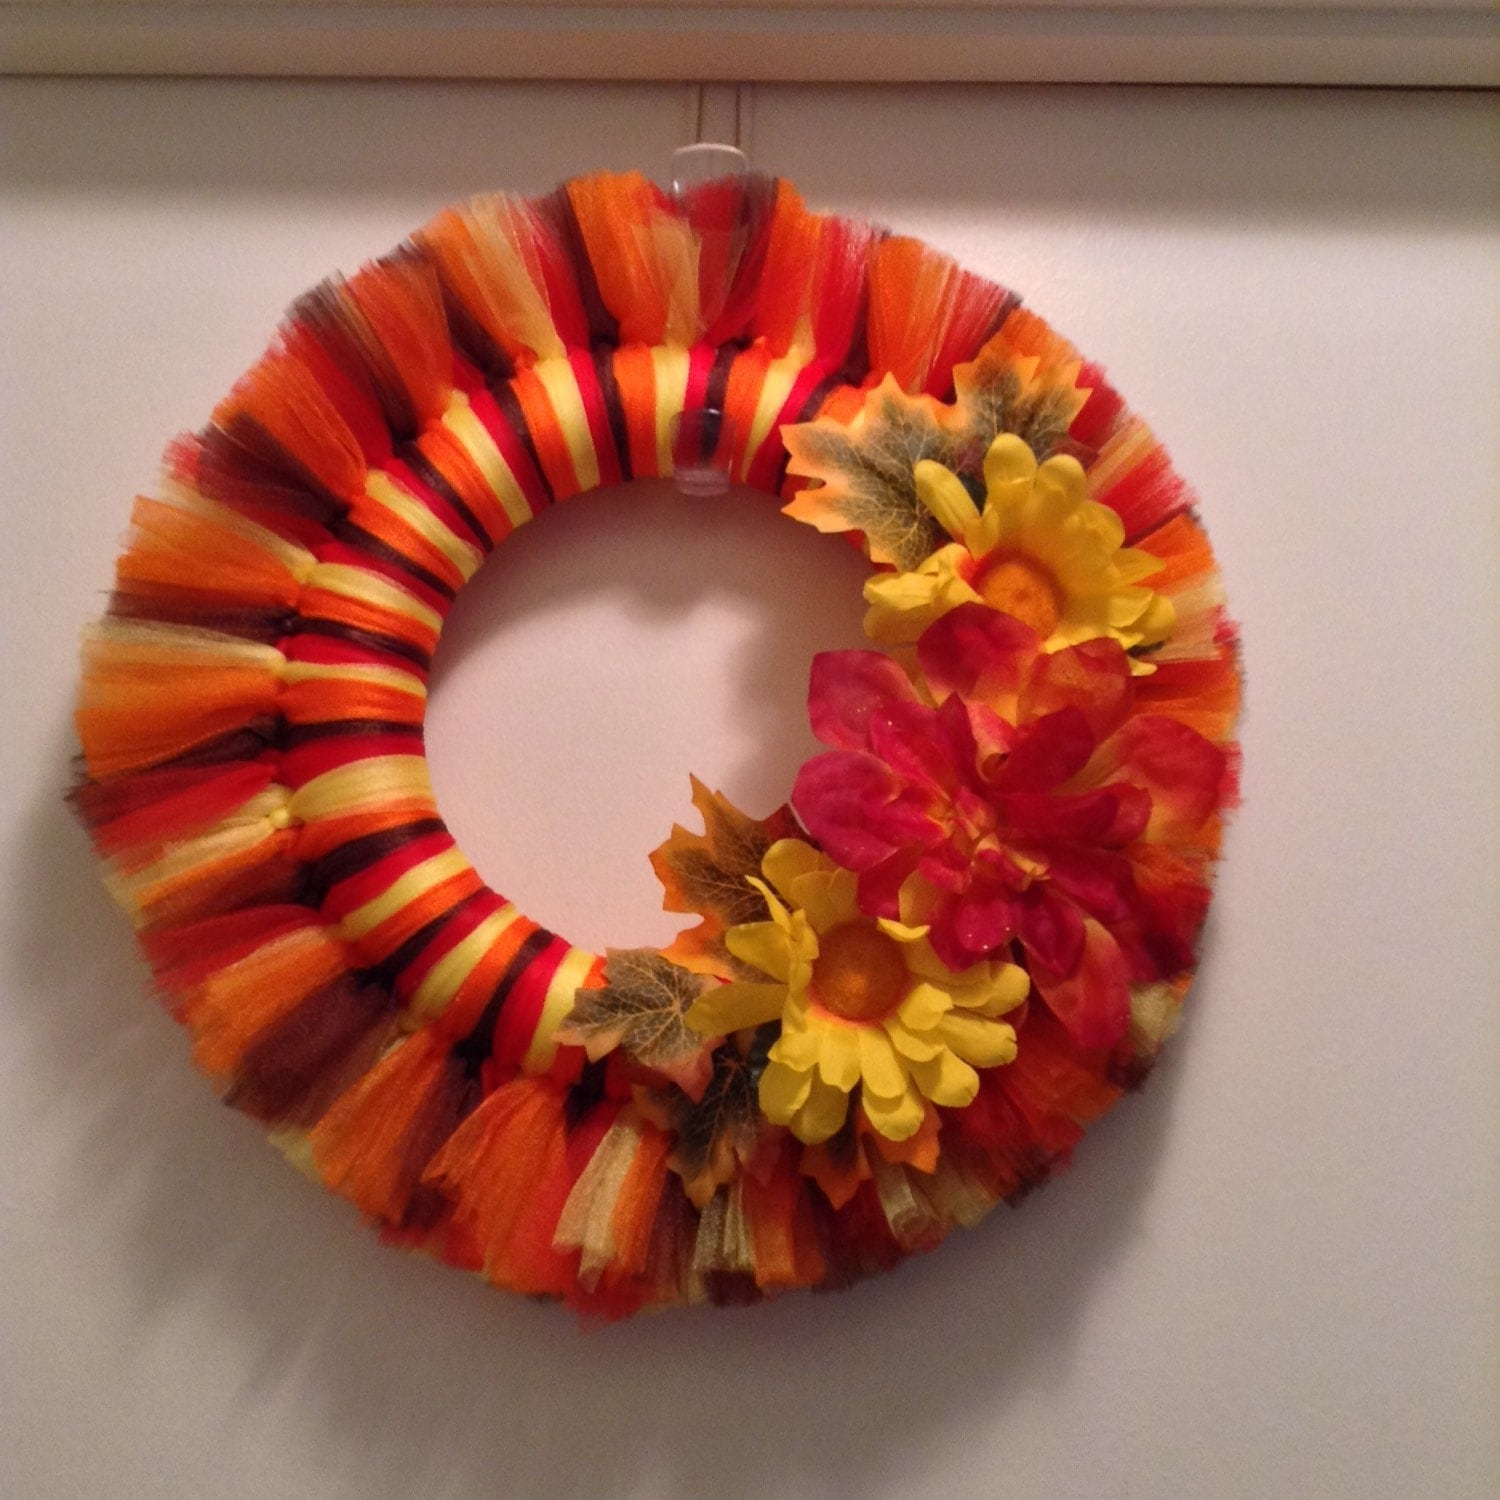 Sale Sale 10 Fall Tulle Wreath